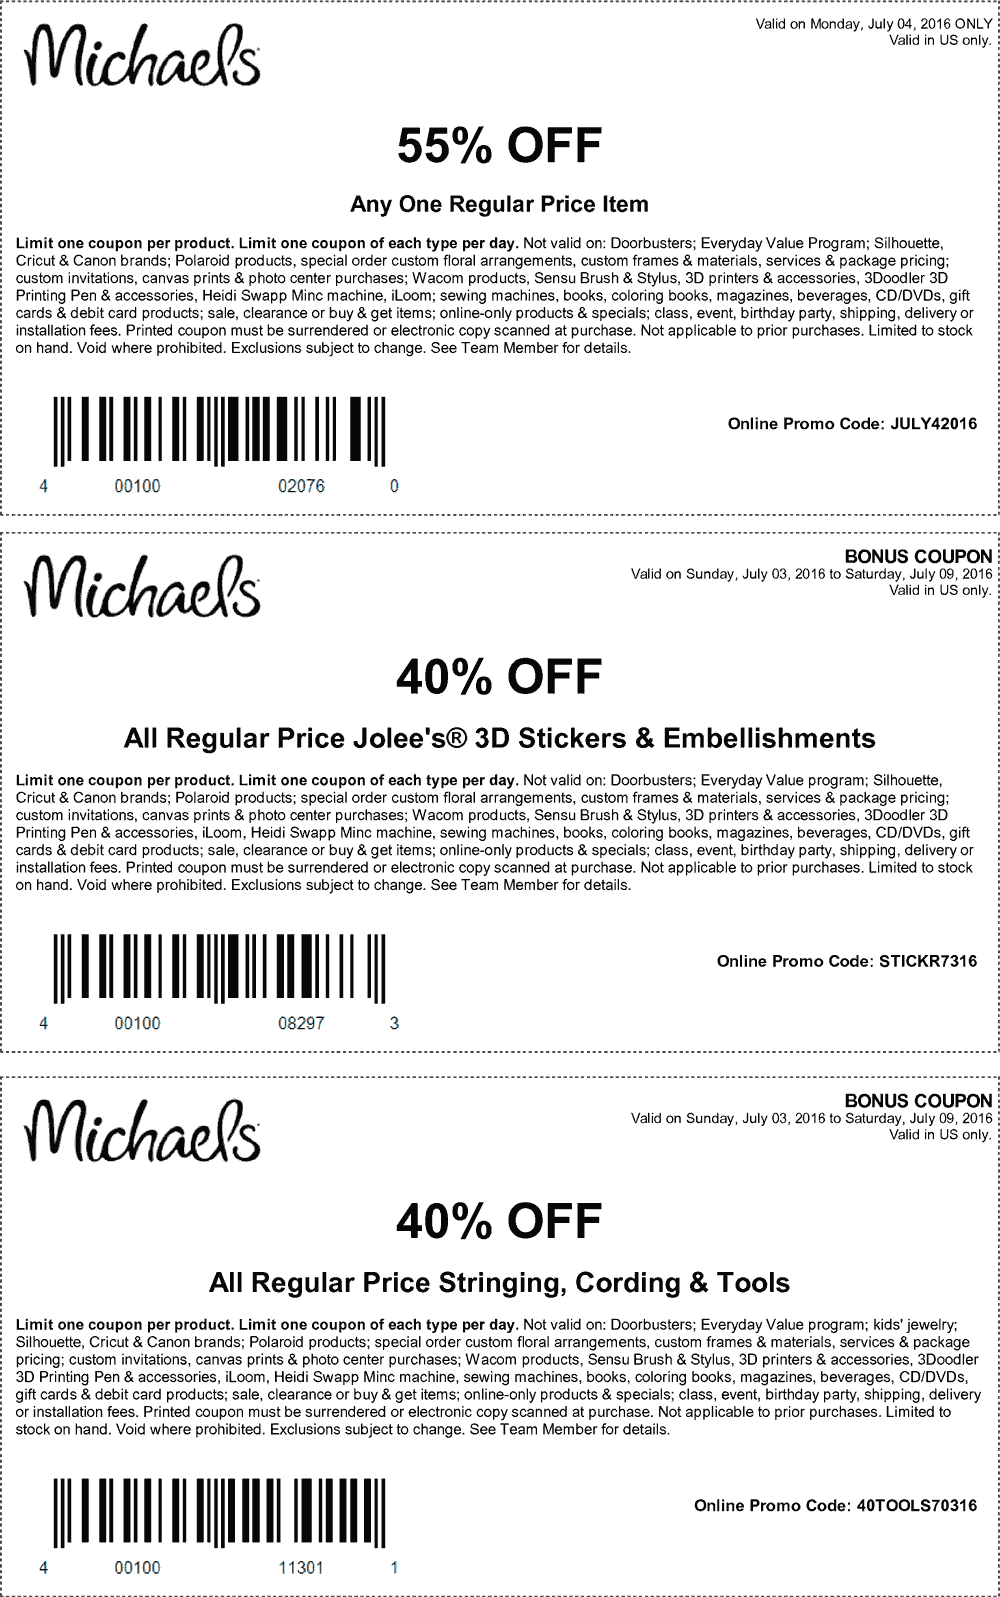 Michaels Coupon August 2017 55% off a single item today at Michaels, or online via promo code JULY42016